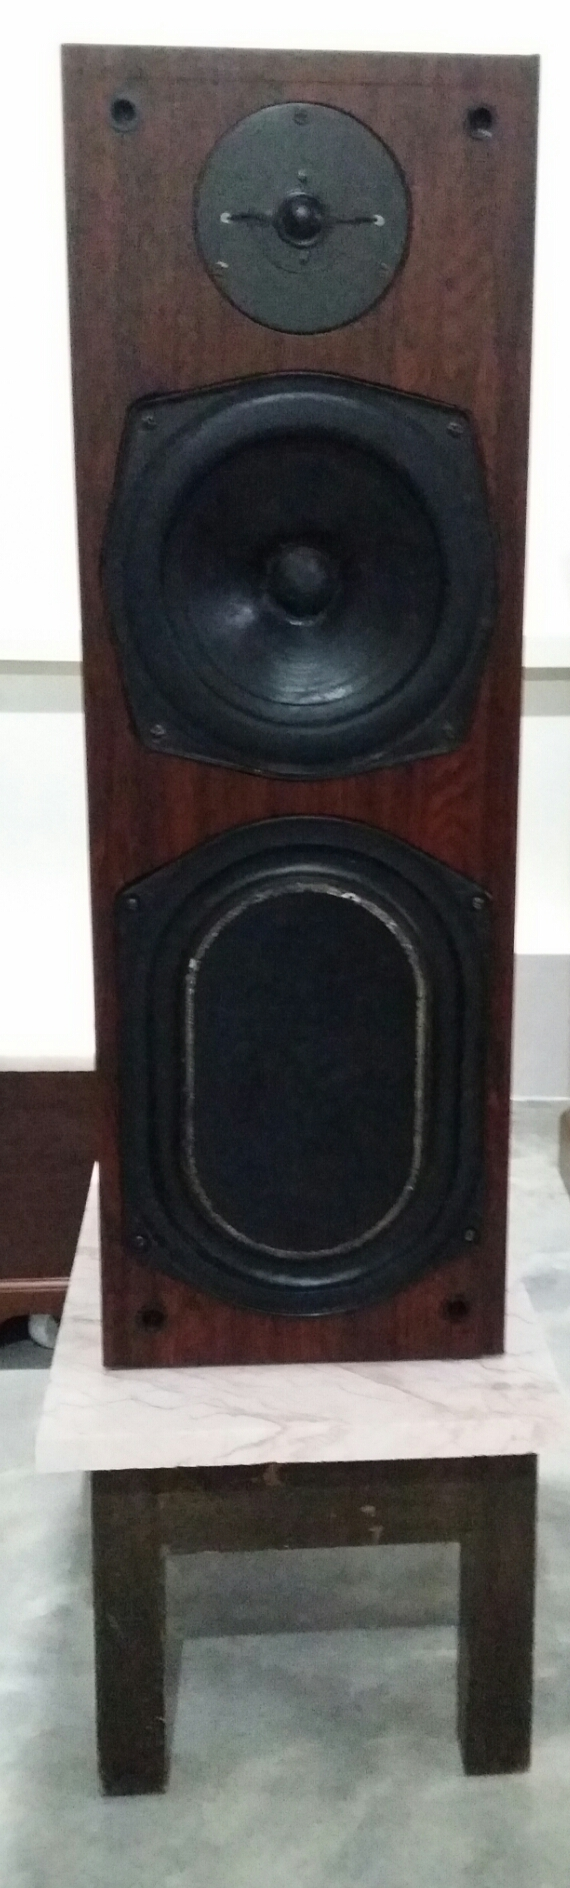 KEF Reference 104 Speakers Photo_11